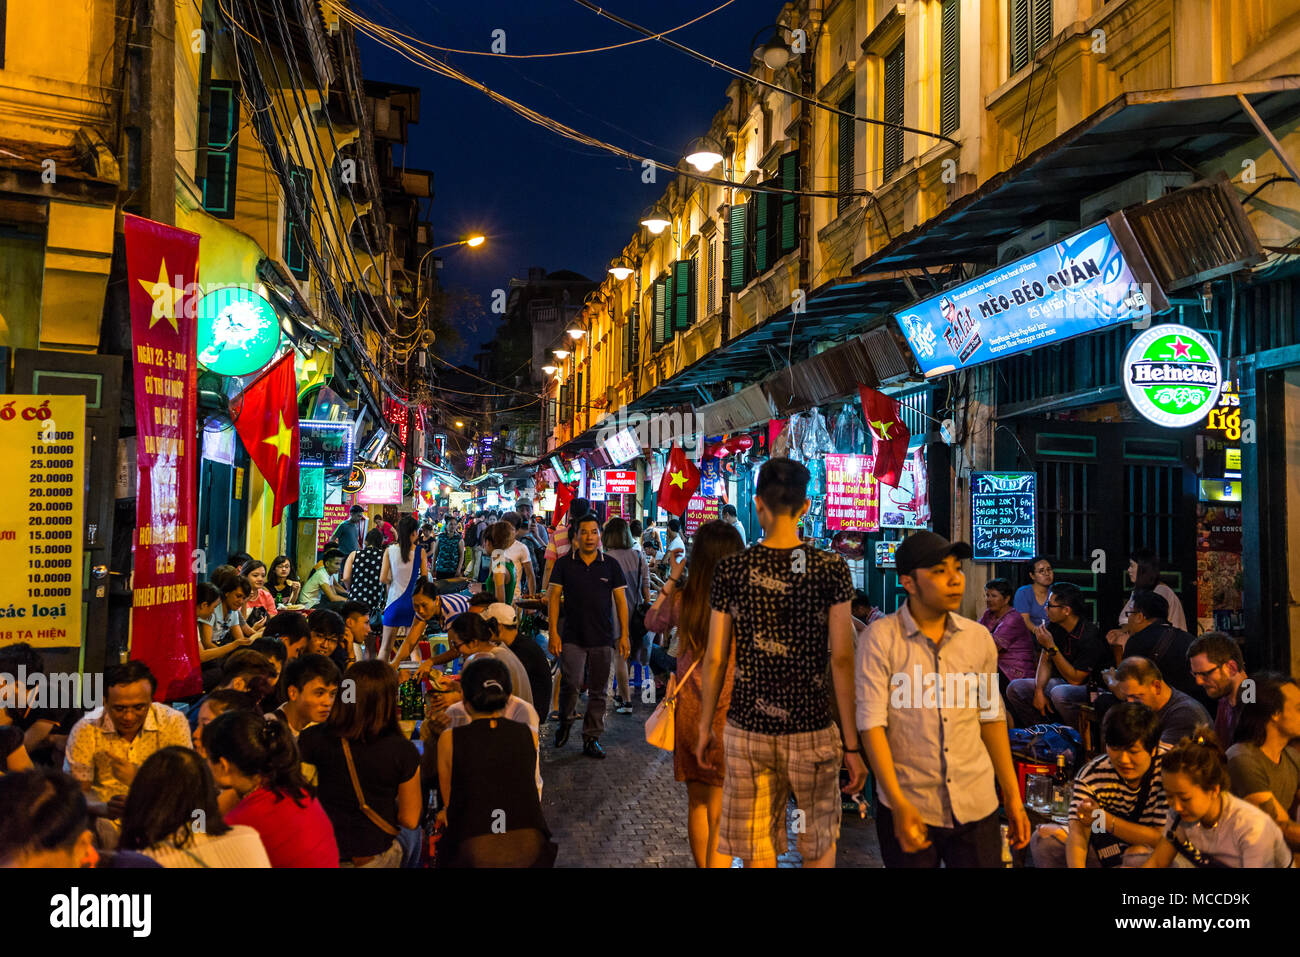 Ta Hien street, also called the Beer street, a busy crowded street full of bars and restaurants and hundreds of people sitting outside eating out enjo Stock Photo